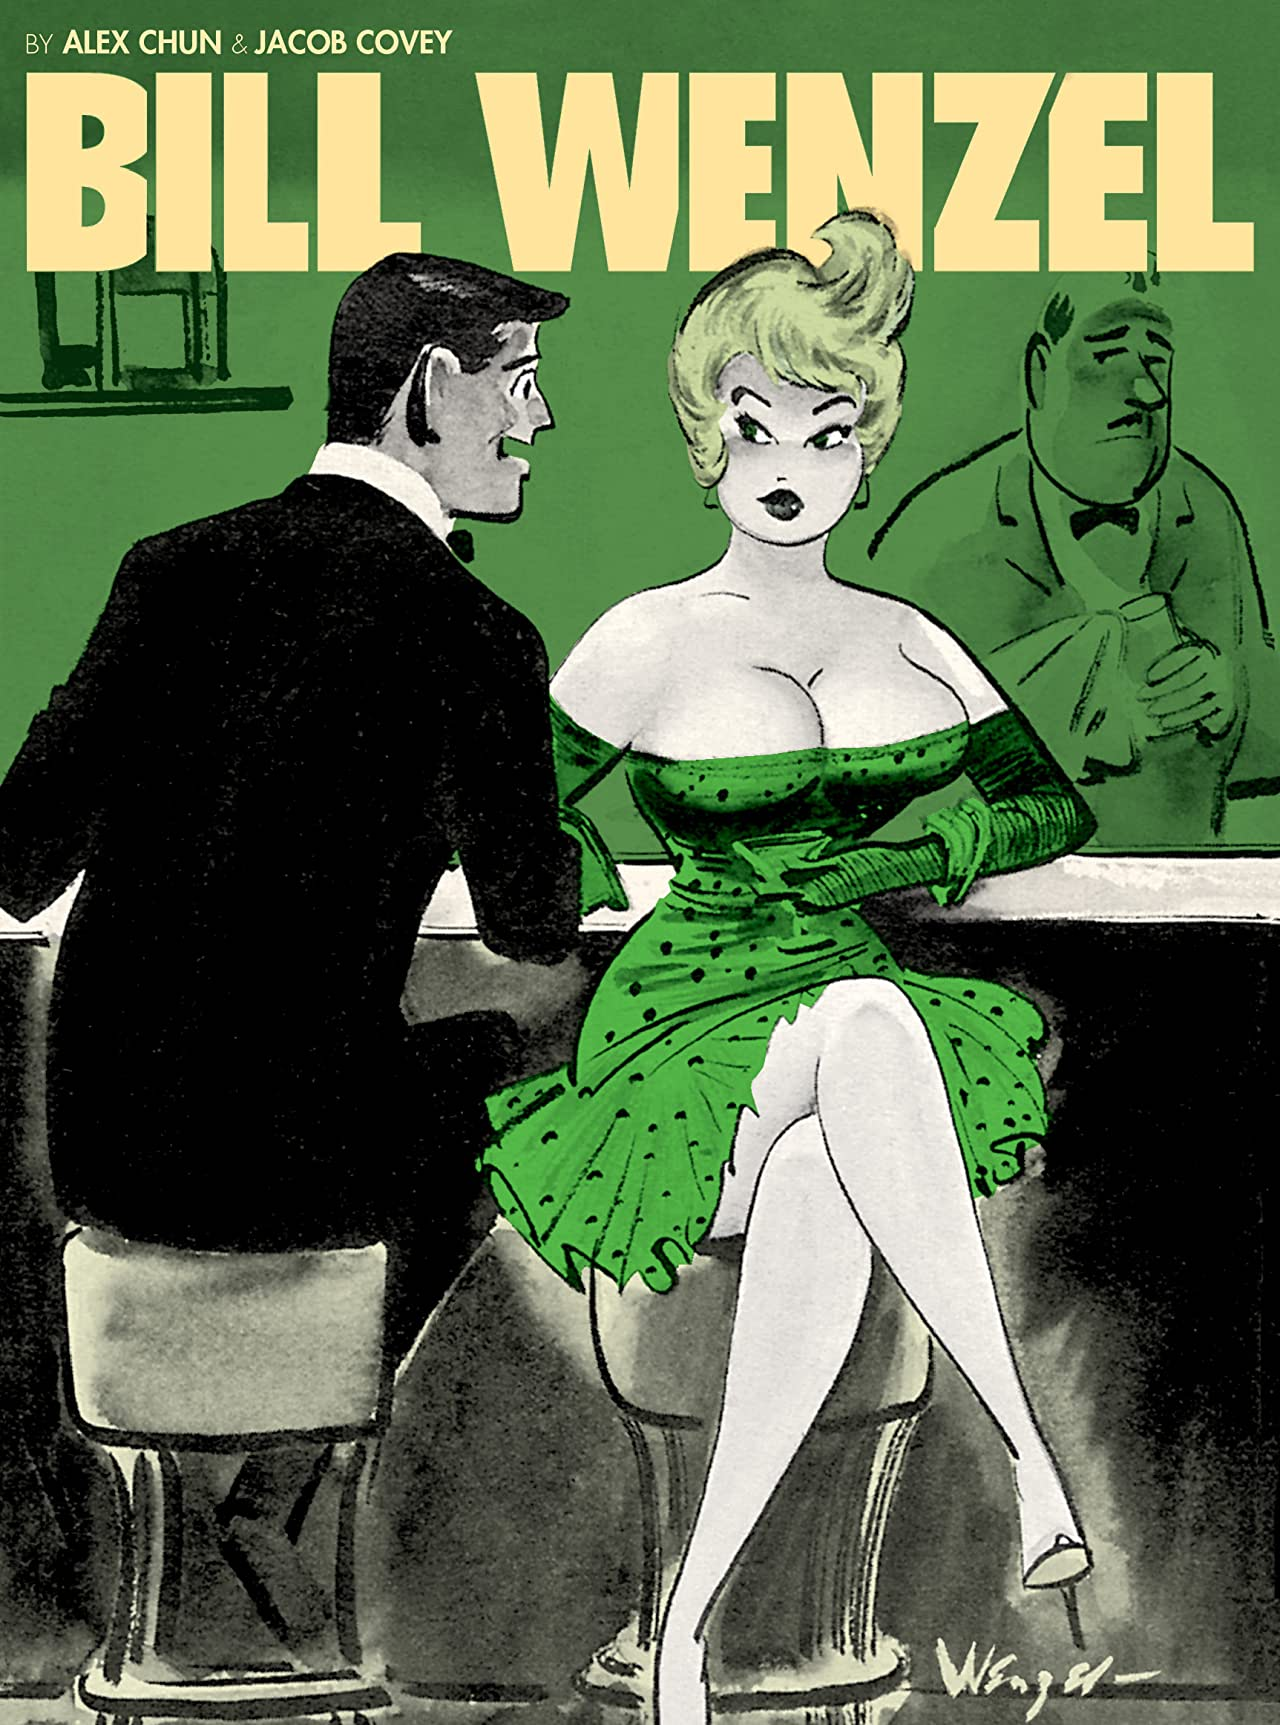 The Pin-Up Art of Bill Wenzel